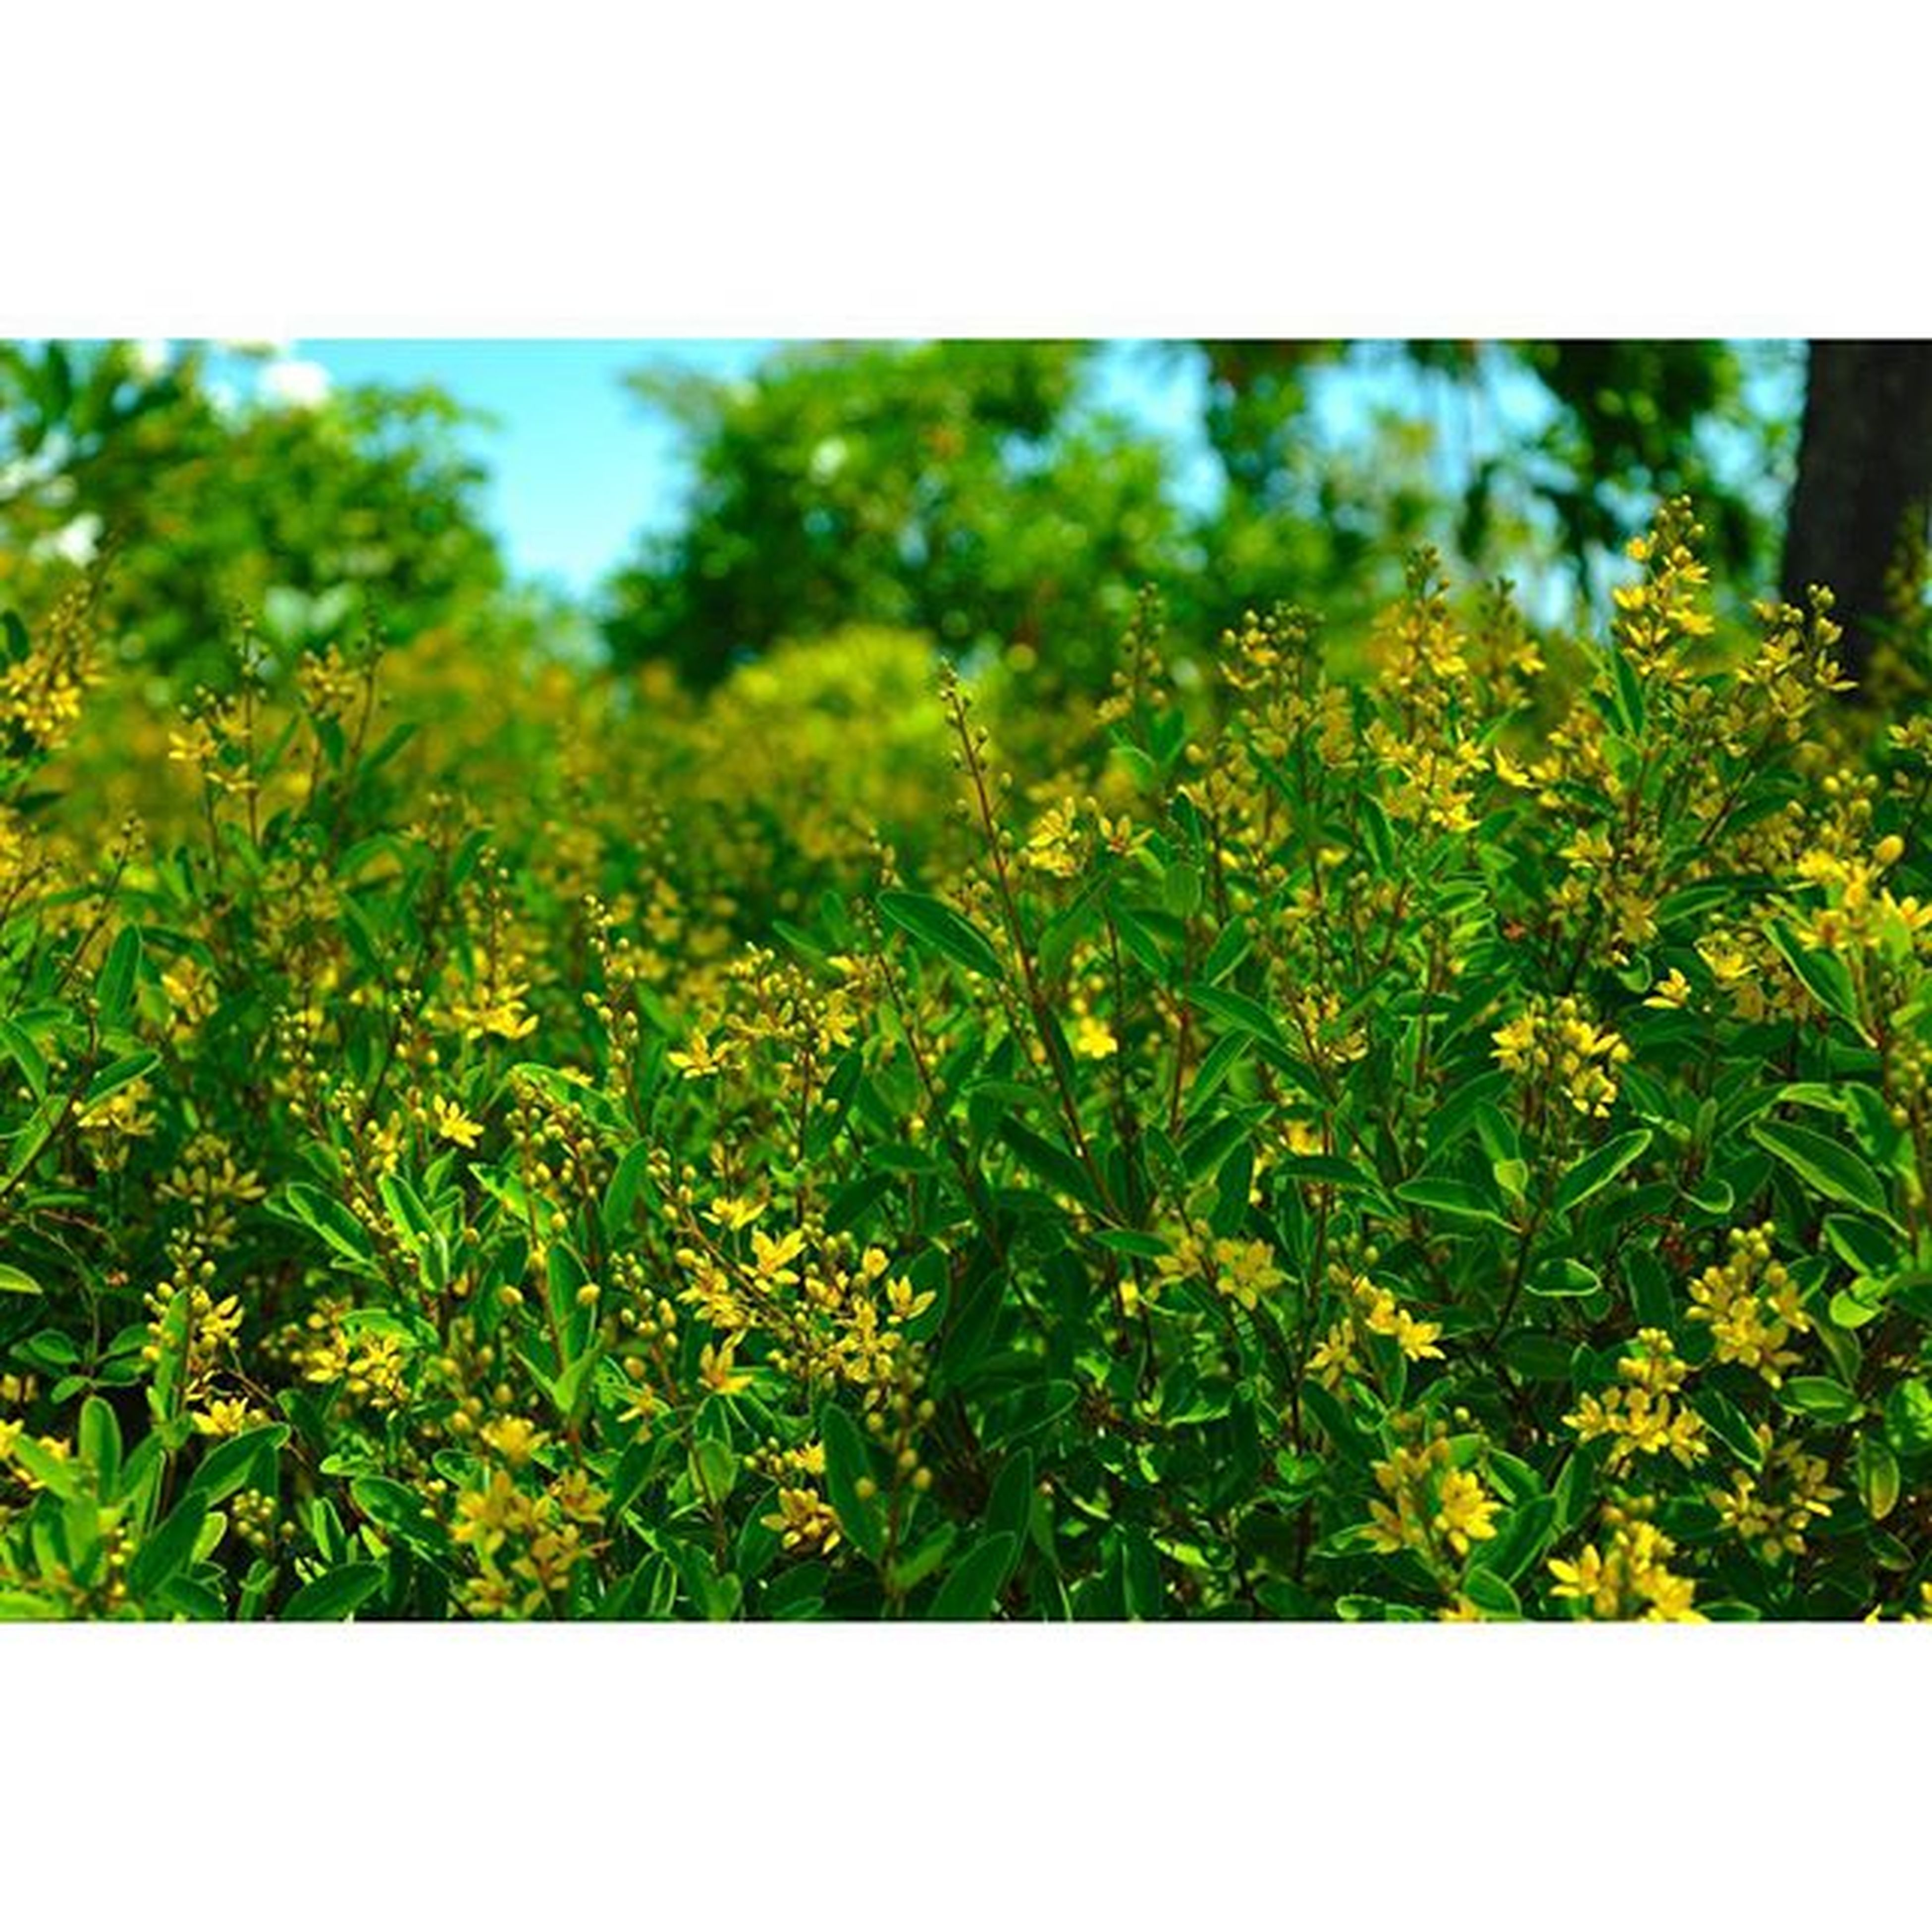 transfer print, growth, auto post production filter, green color, nature, beauty in nature, freshness, plant, yellow, flower, field, tree, lush foliage, close-up, selective focus, tranquility, leaf, focus on foreground, day, outdoors